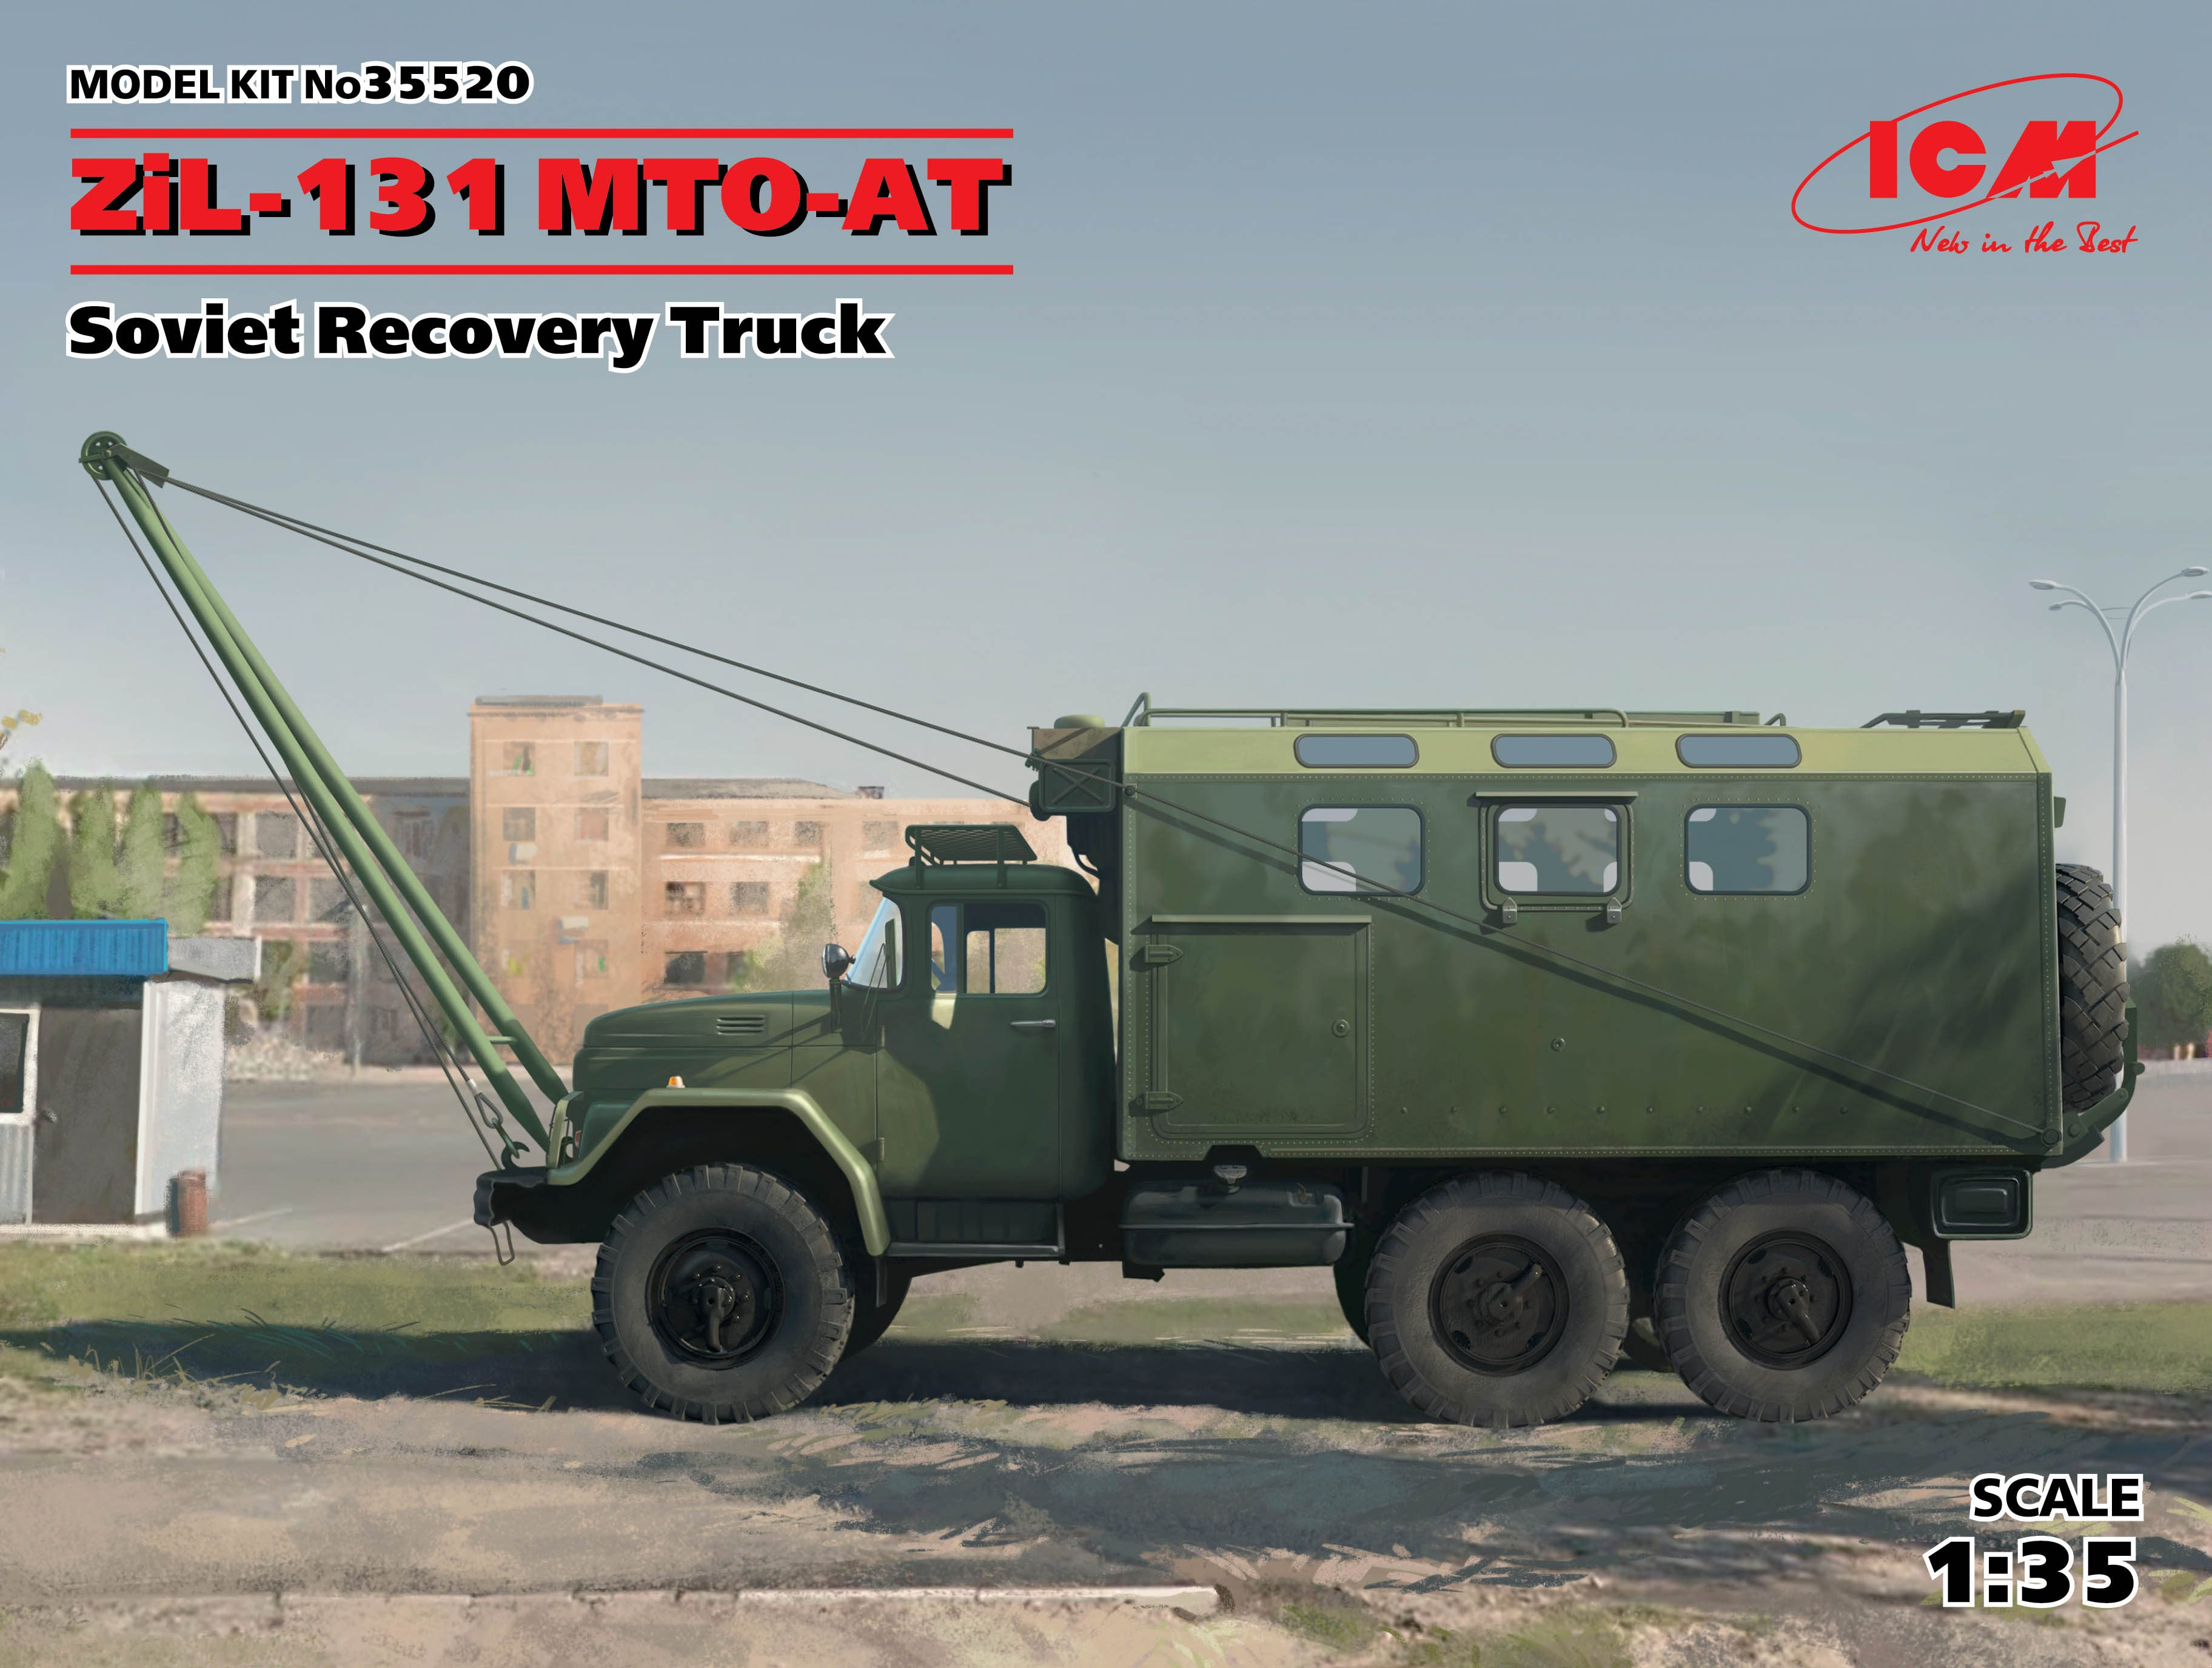 ICM 1/35 ZiL-131 MTO-AT, Soviet Recovery Truck